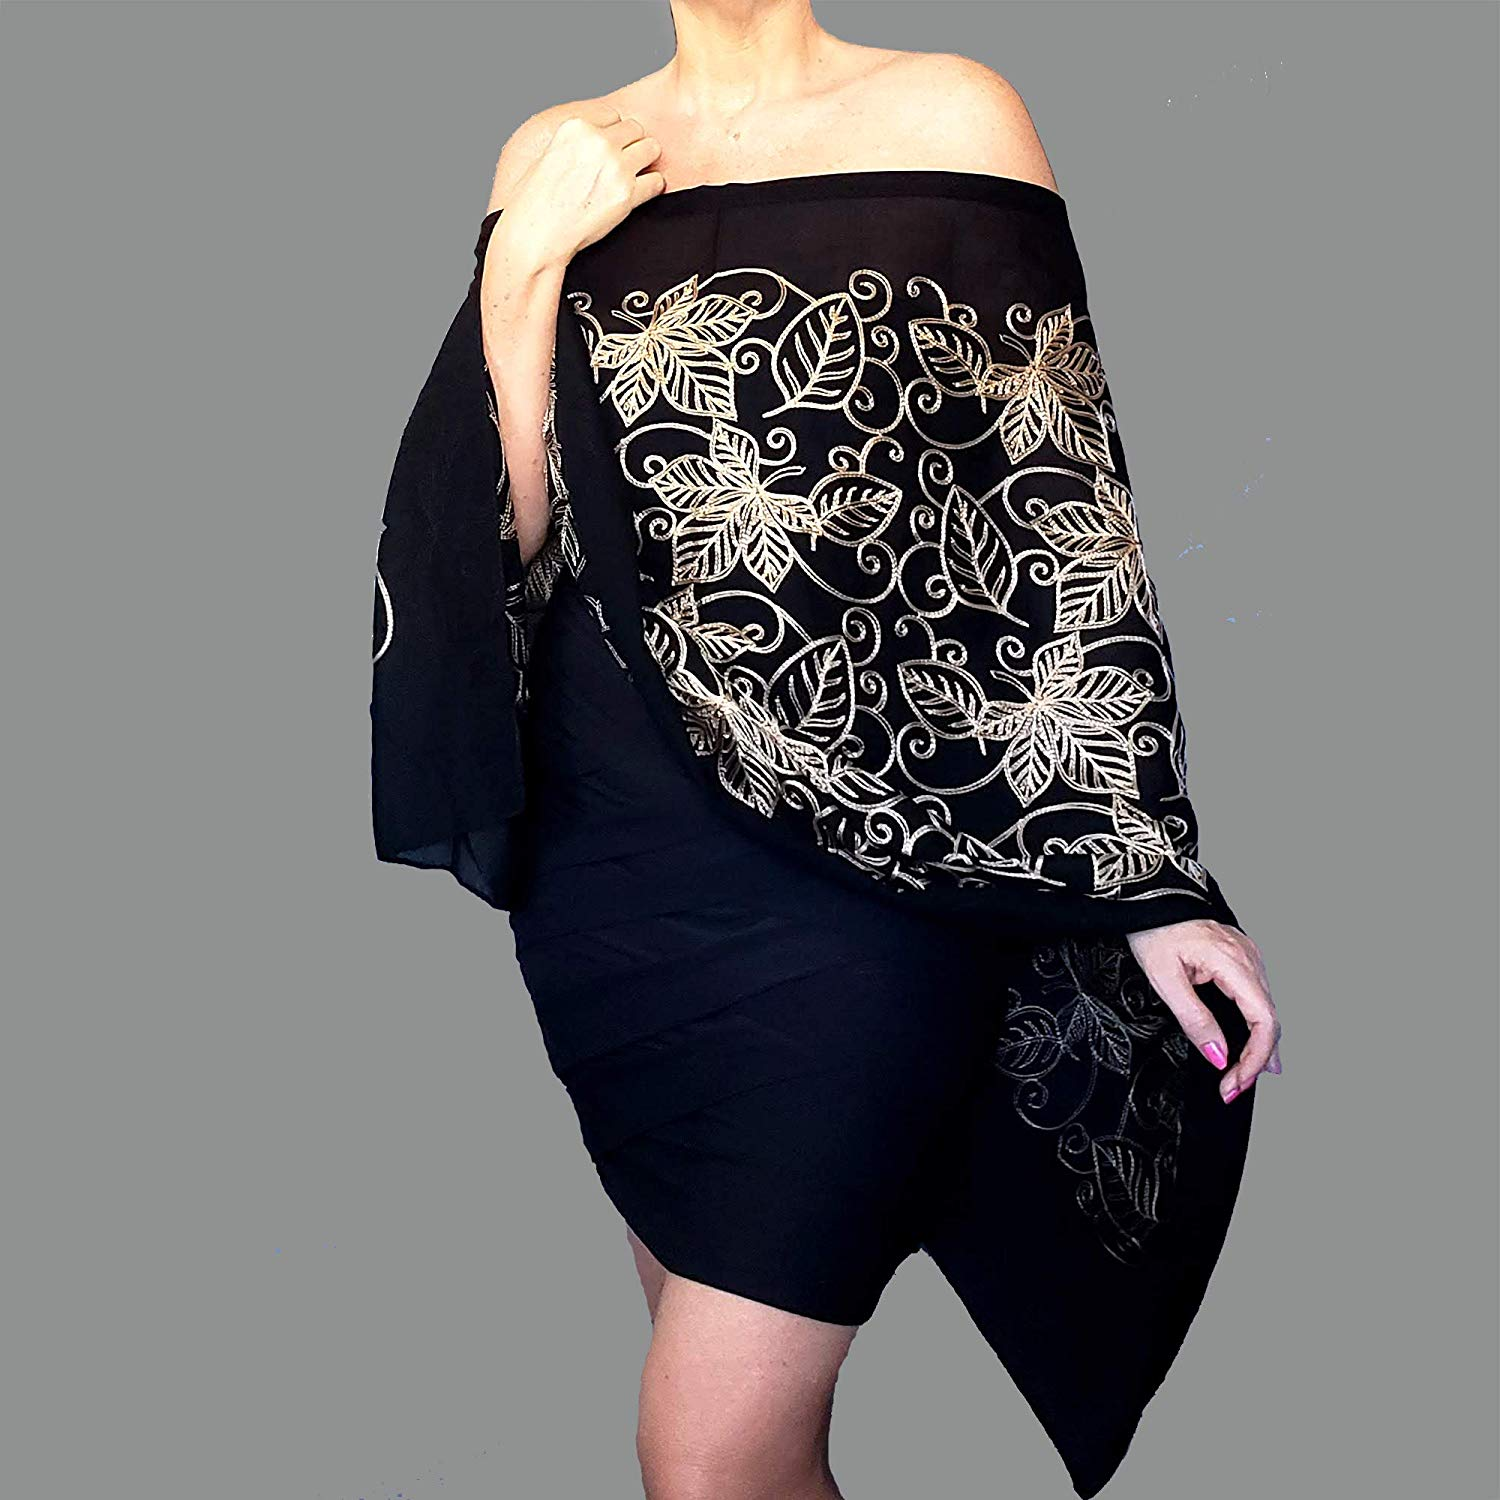 e46d925f2a4 Get Quotations · Metallic Gold Evening Wrap Semi Sheer Black Shawl  Embroidered Scarf By ZiiCi